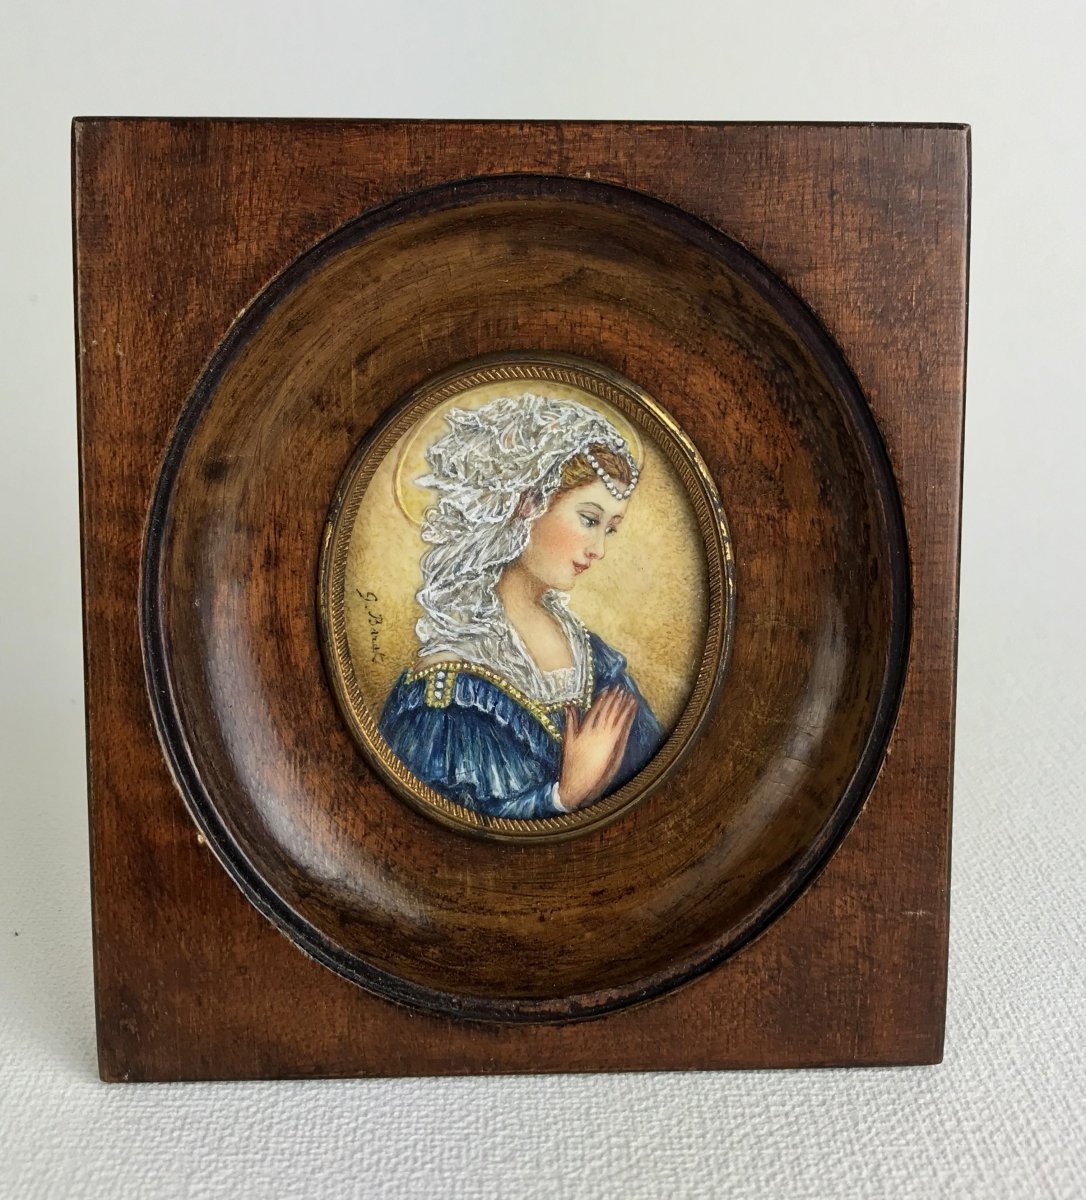 Miniature On Ivory Of The XIXth Oil / Portrait D A Young Woman Signed G.barat (1830 Env)